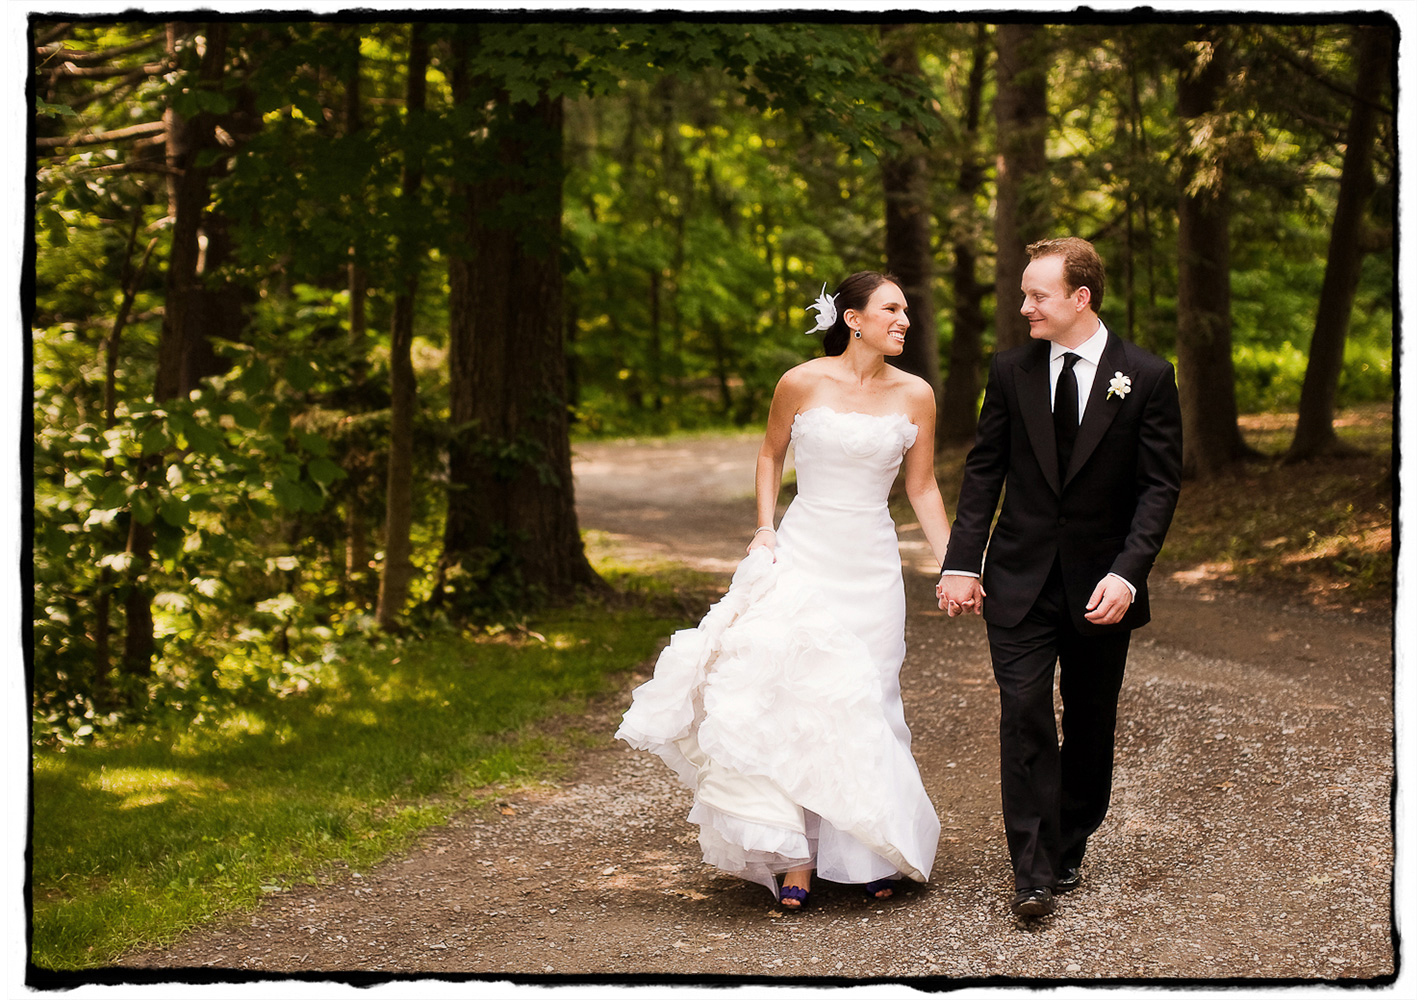 The grounds at Buttermilk Falls Inn are an incredible spot for a romantic stroll.  I loved how Michele's dress flounced as she walked with her husband-to-be.